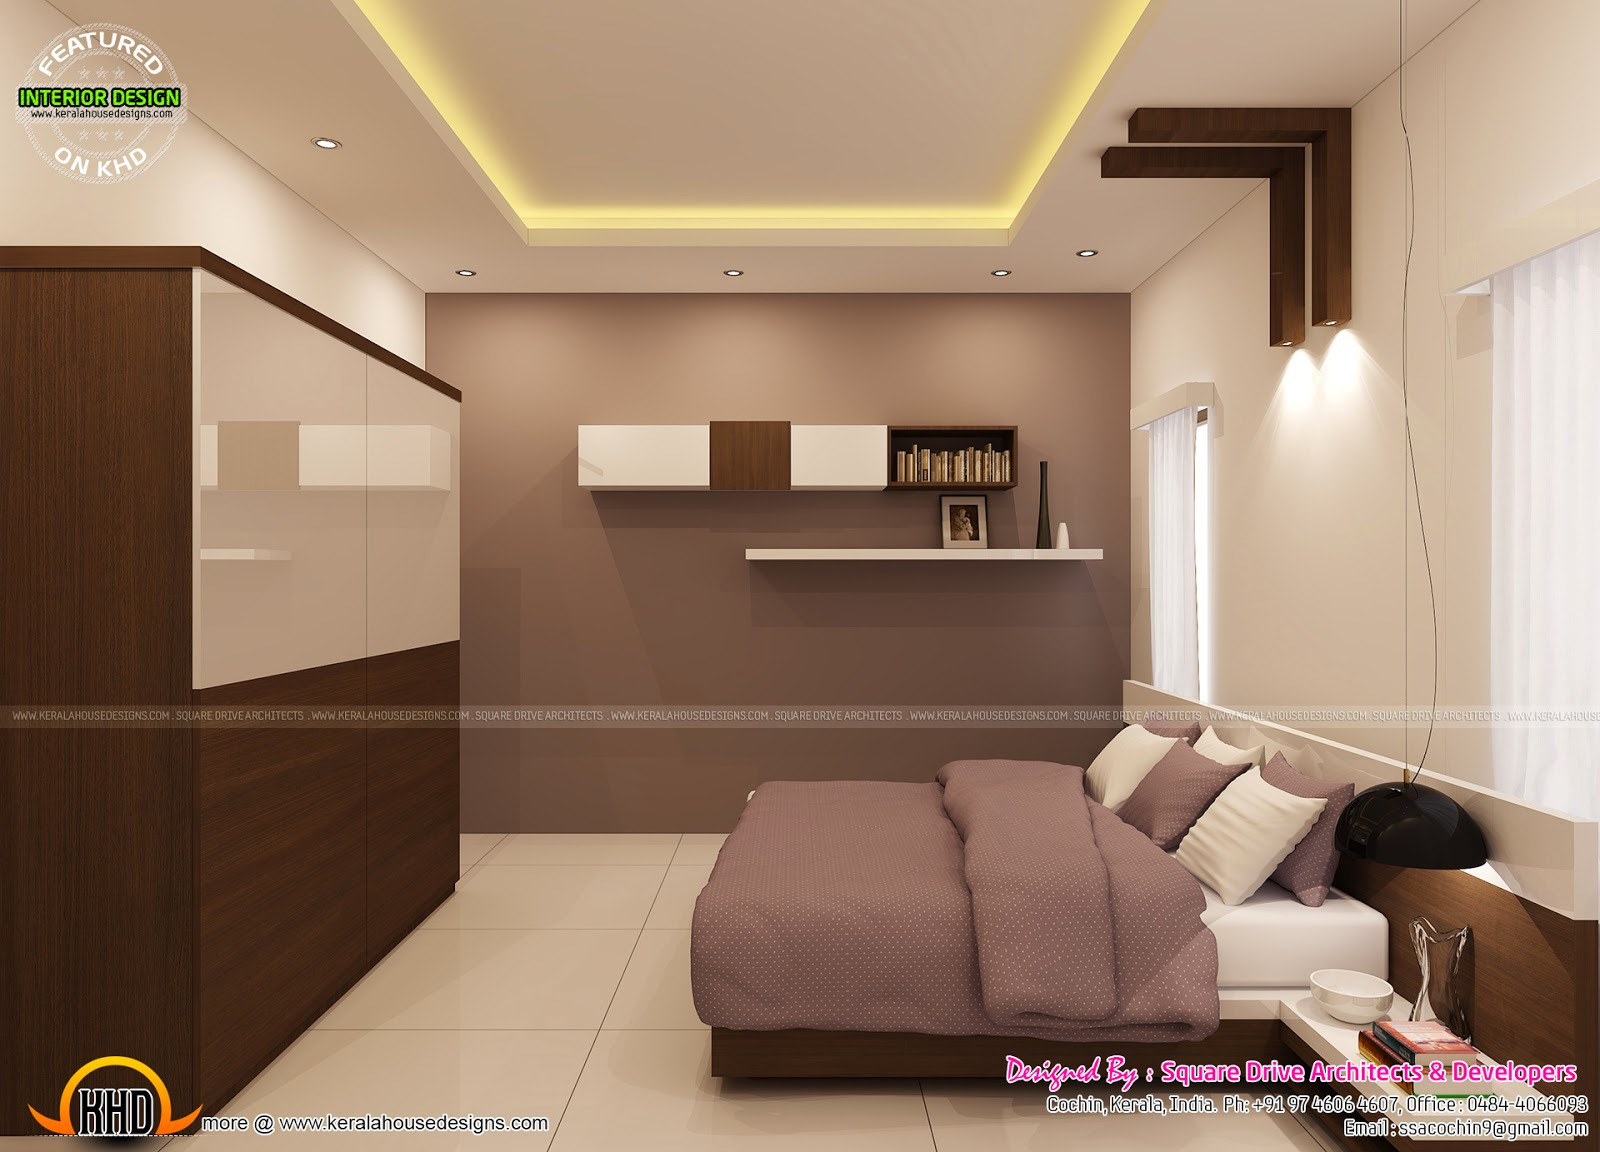 Bedroom interior decoration kerala home design and floor for Interior design ideas for bedroom